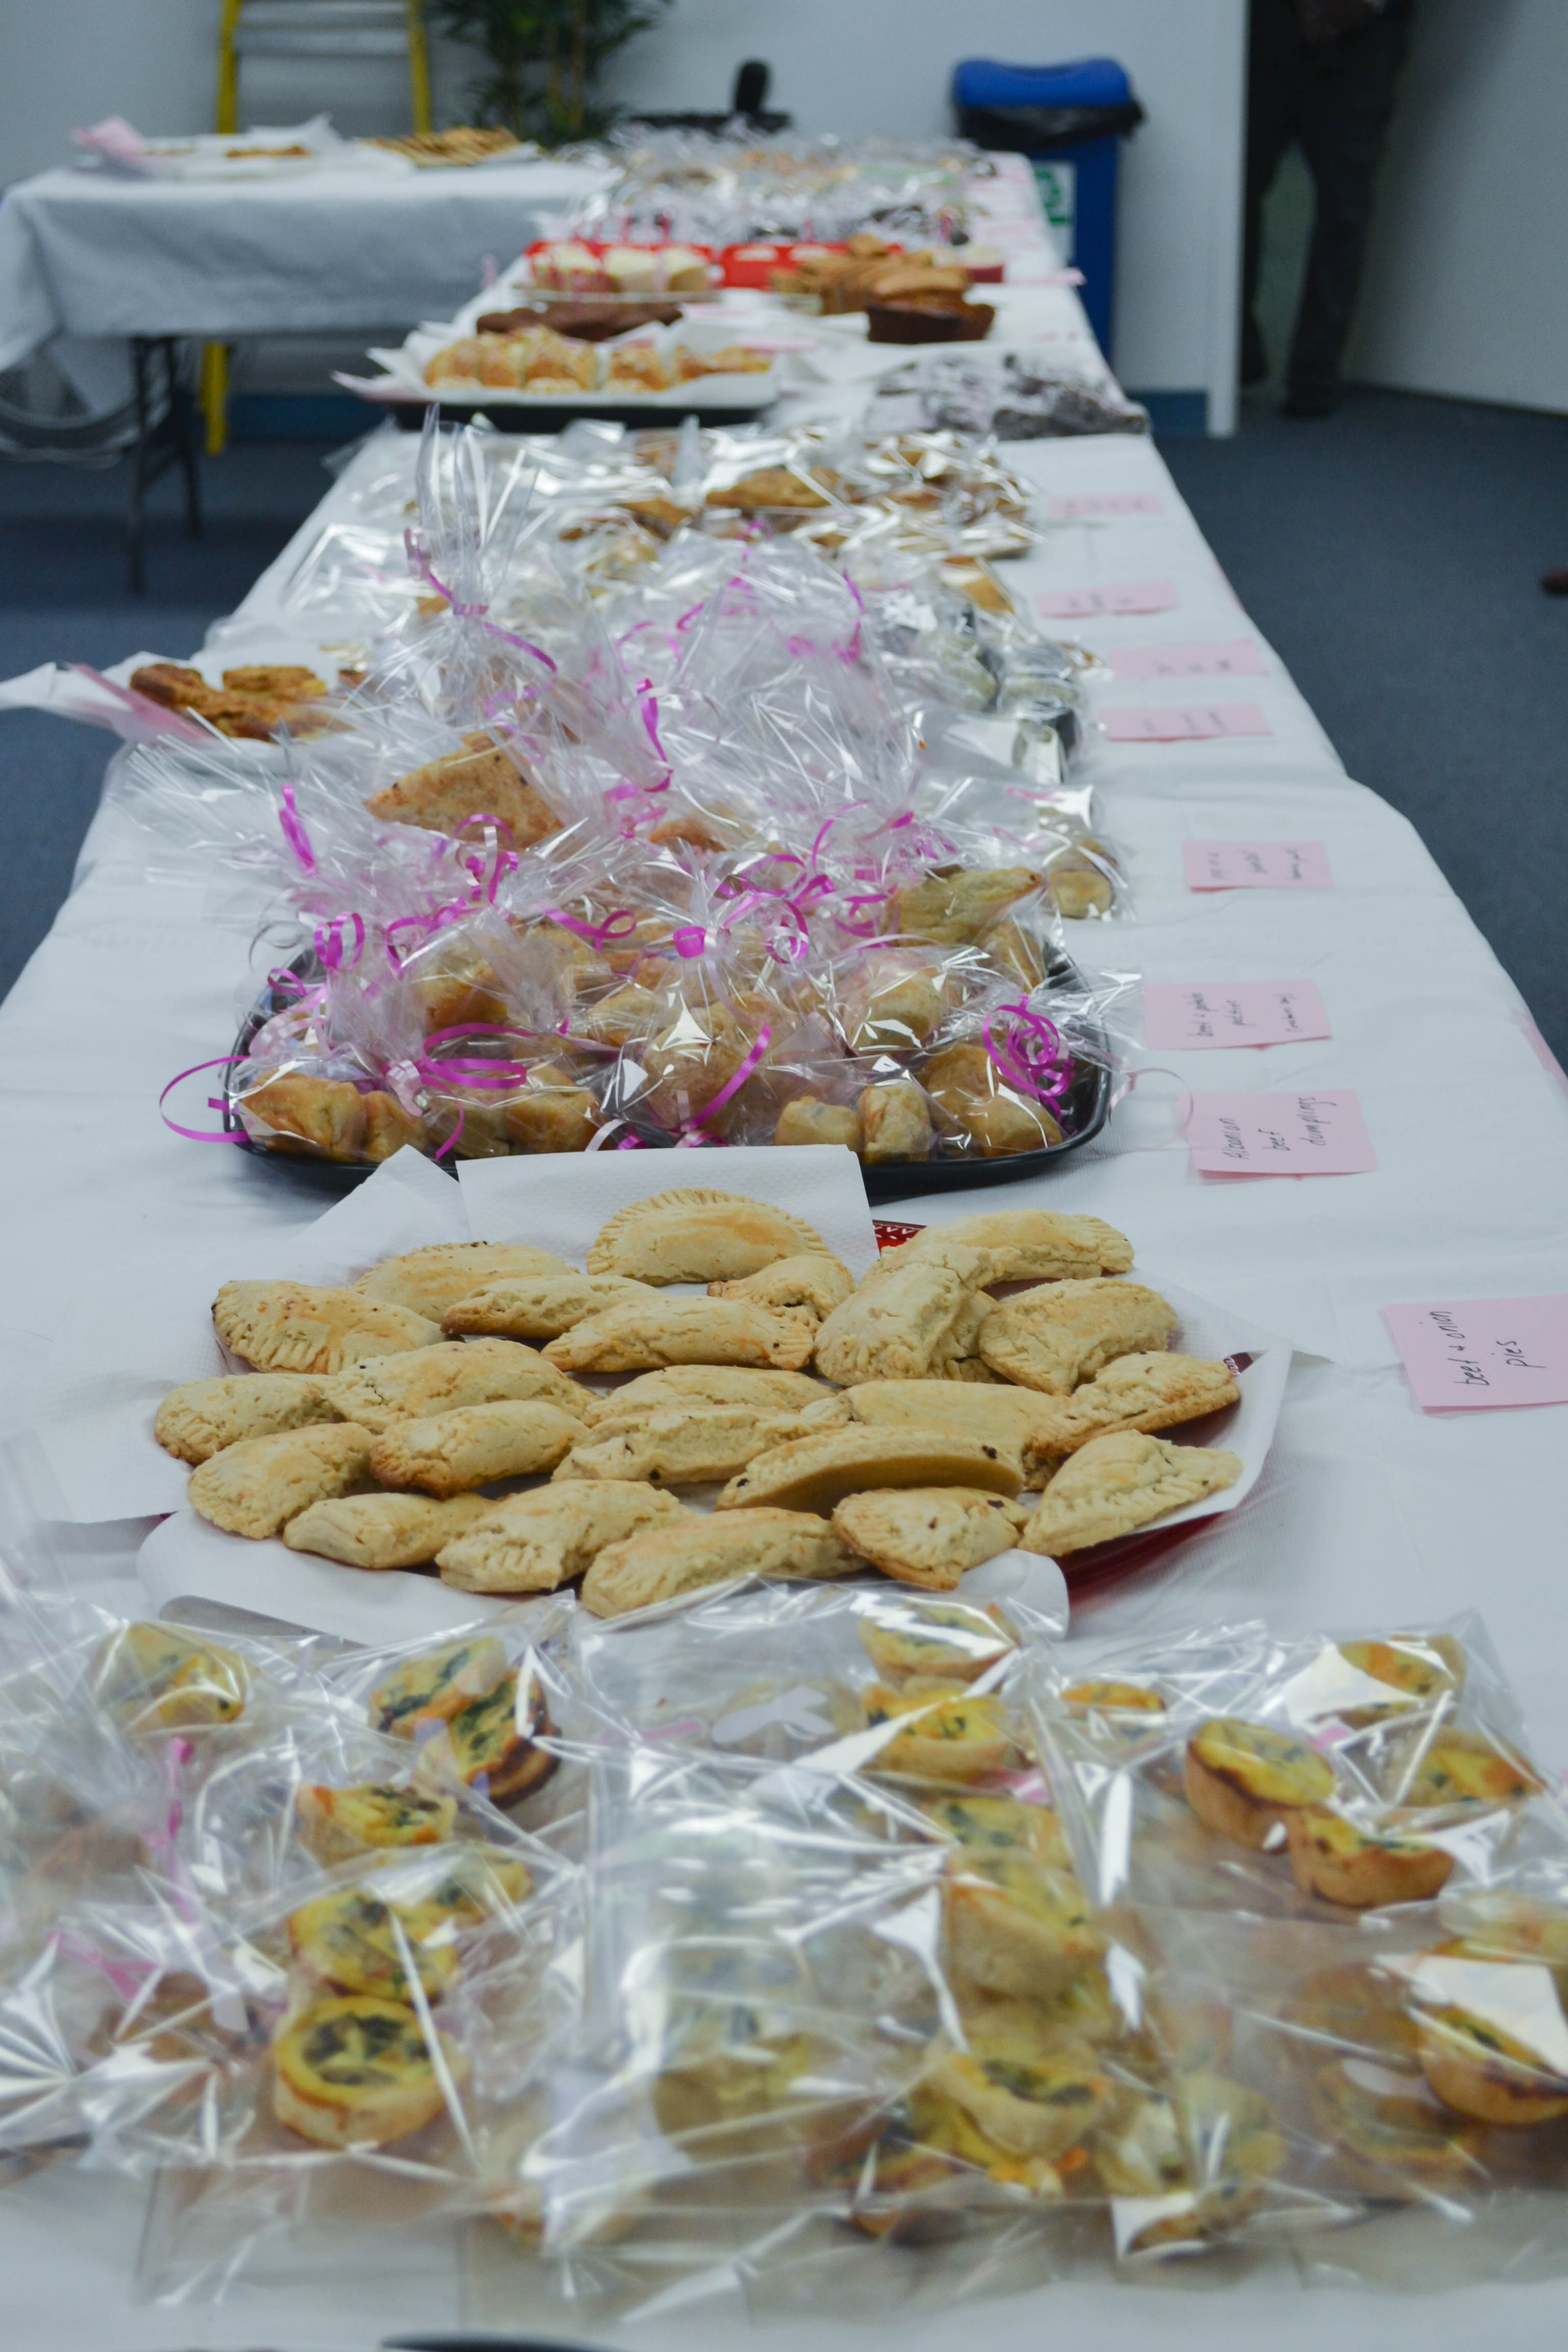 Baked goods displayed at Diplomatic Language Services Race For The Cure Bake Sale